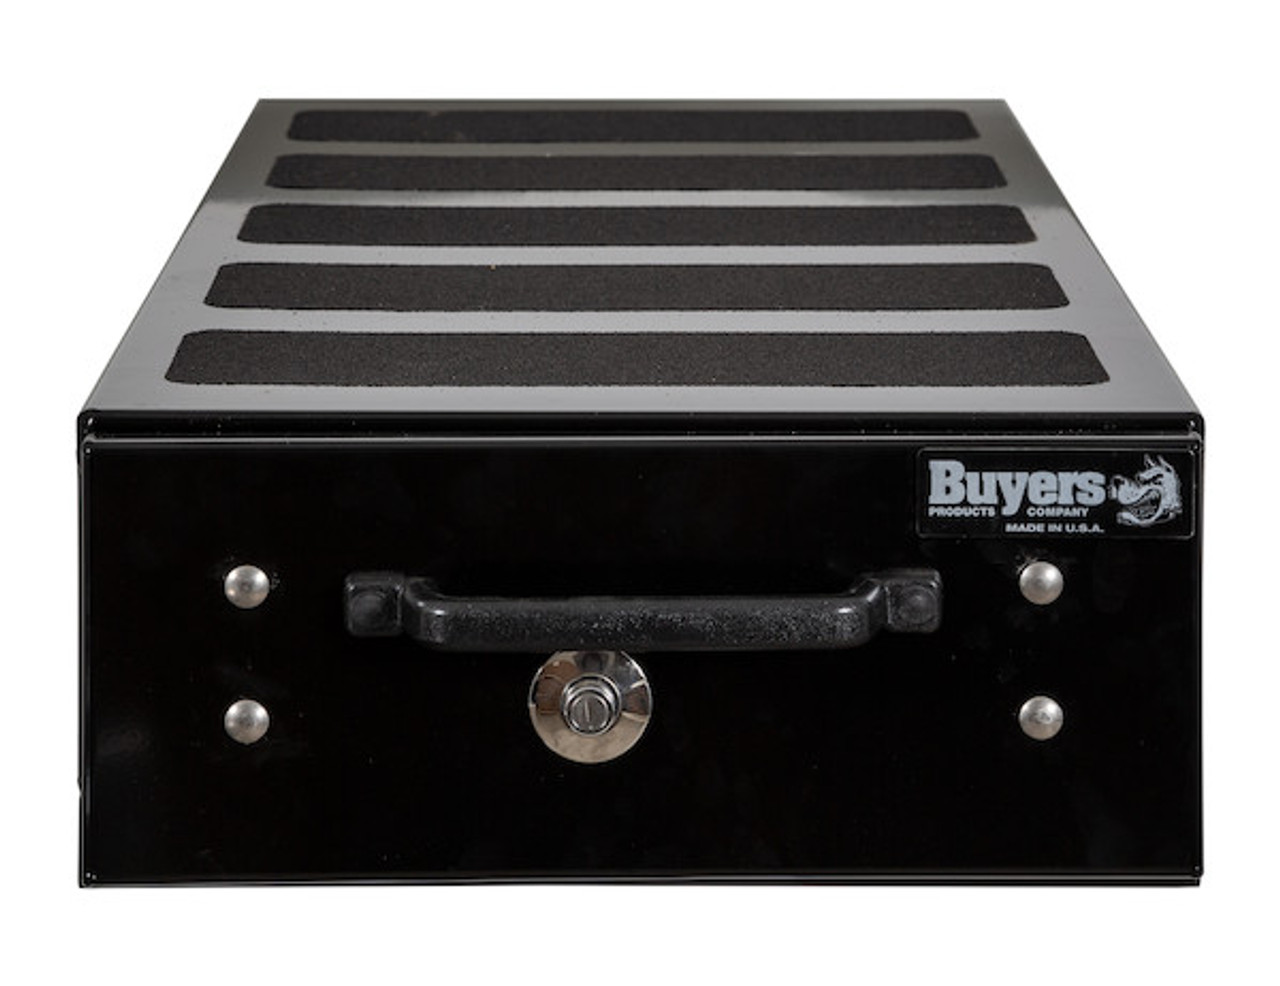 """1718310 BUYERS SMOOTH BLACK ALUMINUM SLIDE OUT TRUCK BED TOOLBOX 9""""Hx48""""Dx20""""W PICTURE # 4"""